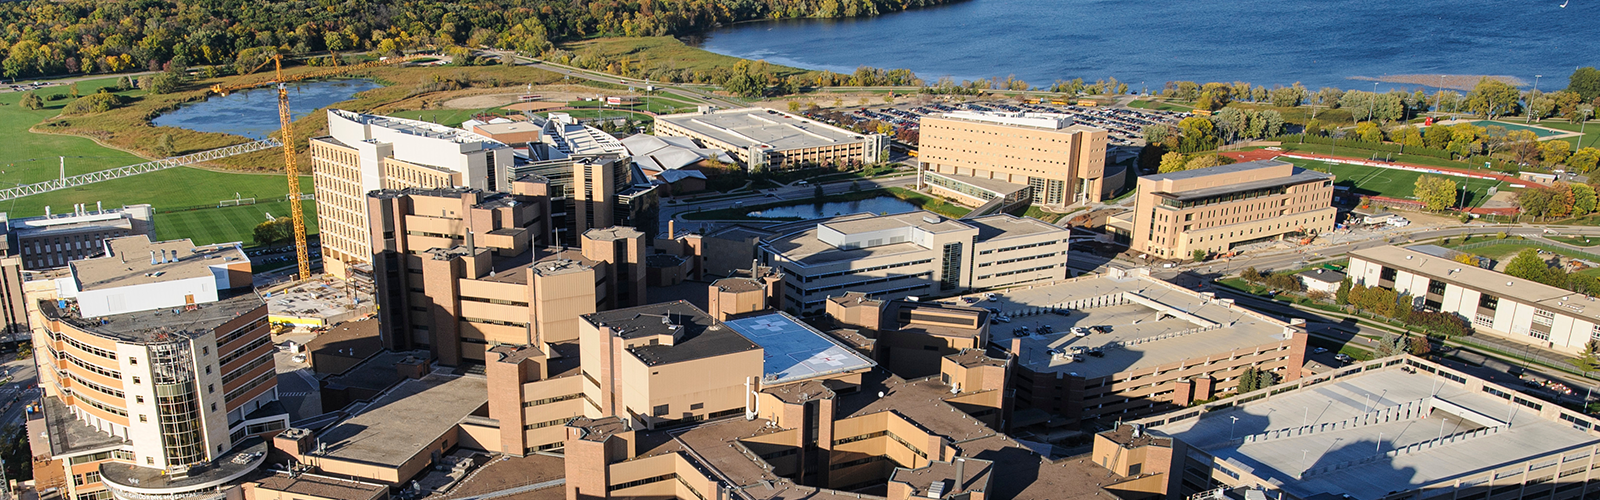 The medical area of the western side of the University of Wisconsin-Madison campus is pictured in an aerial view during autumn.